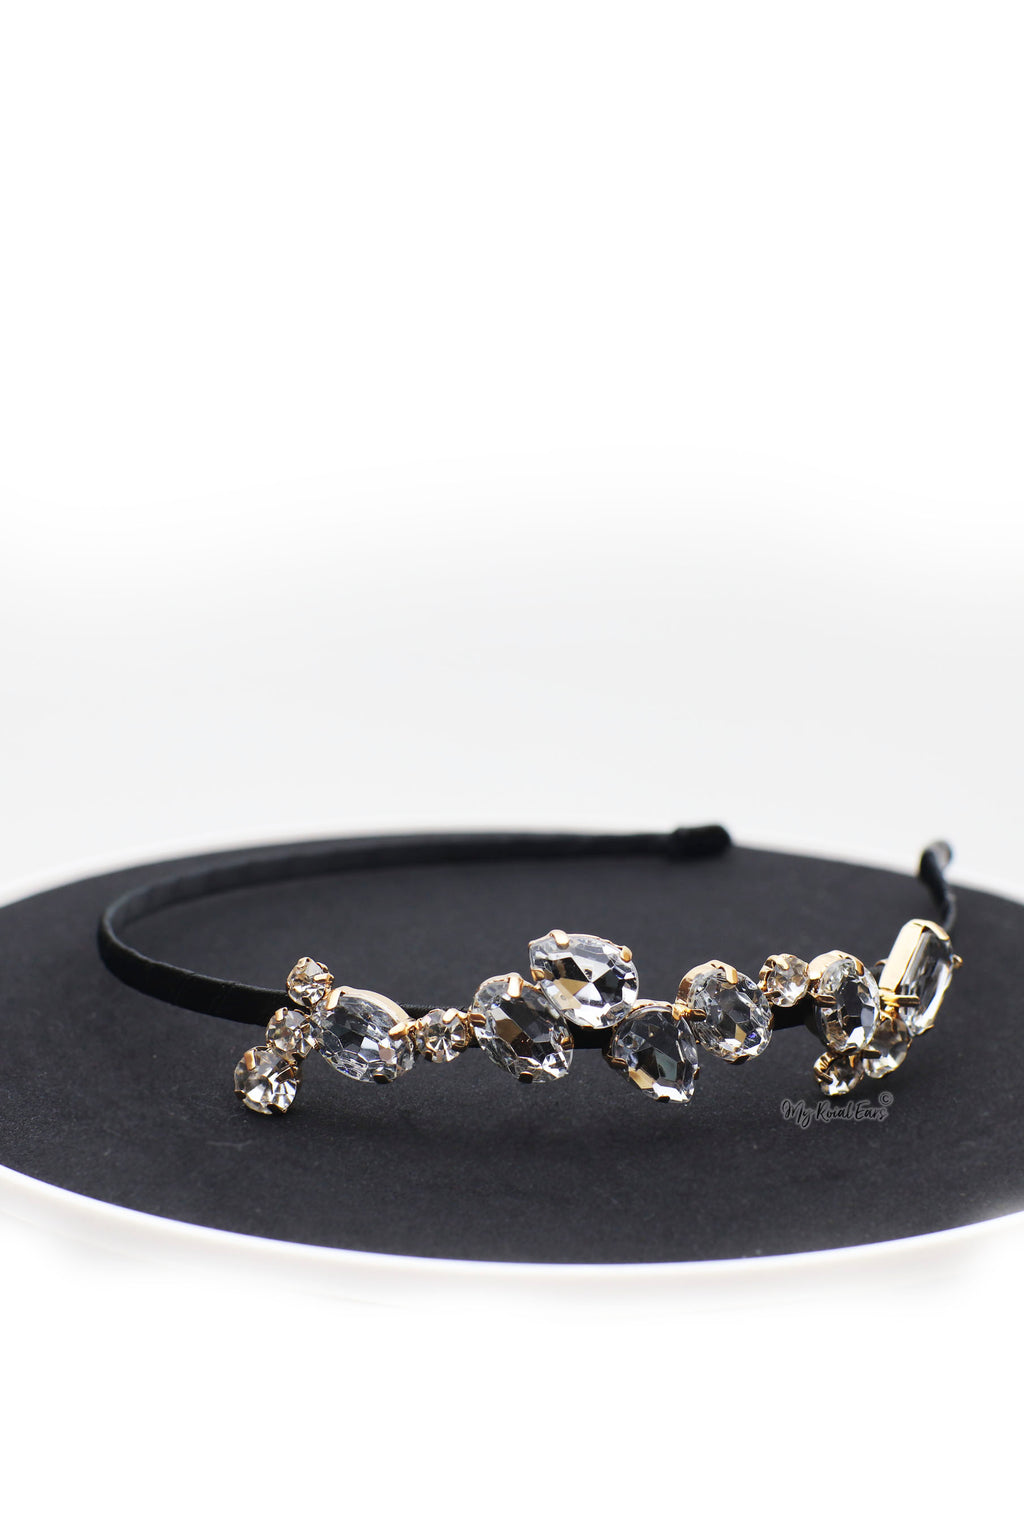 Queen Majesta-side crystal headband - My Roial Ears LTD